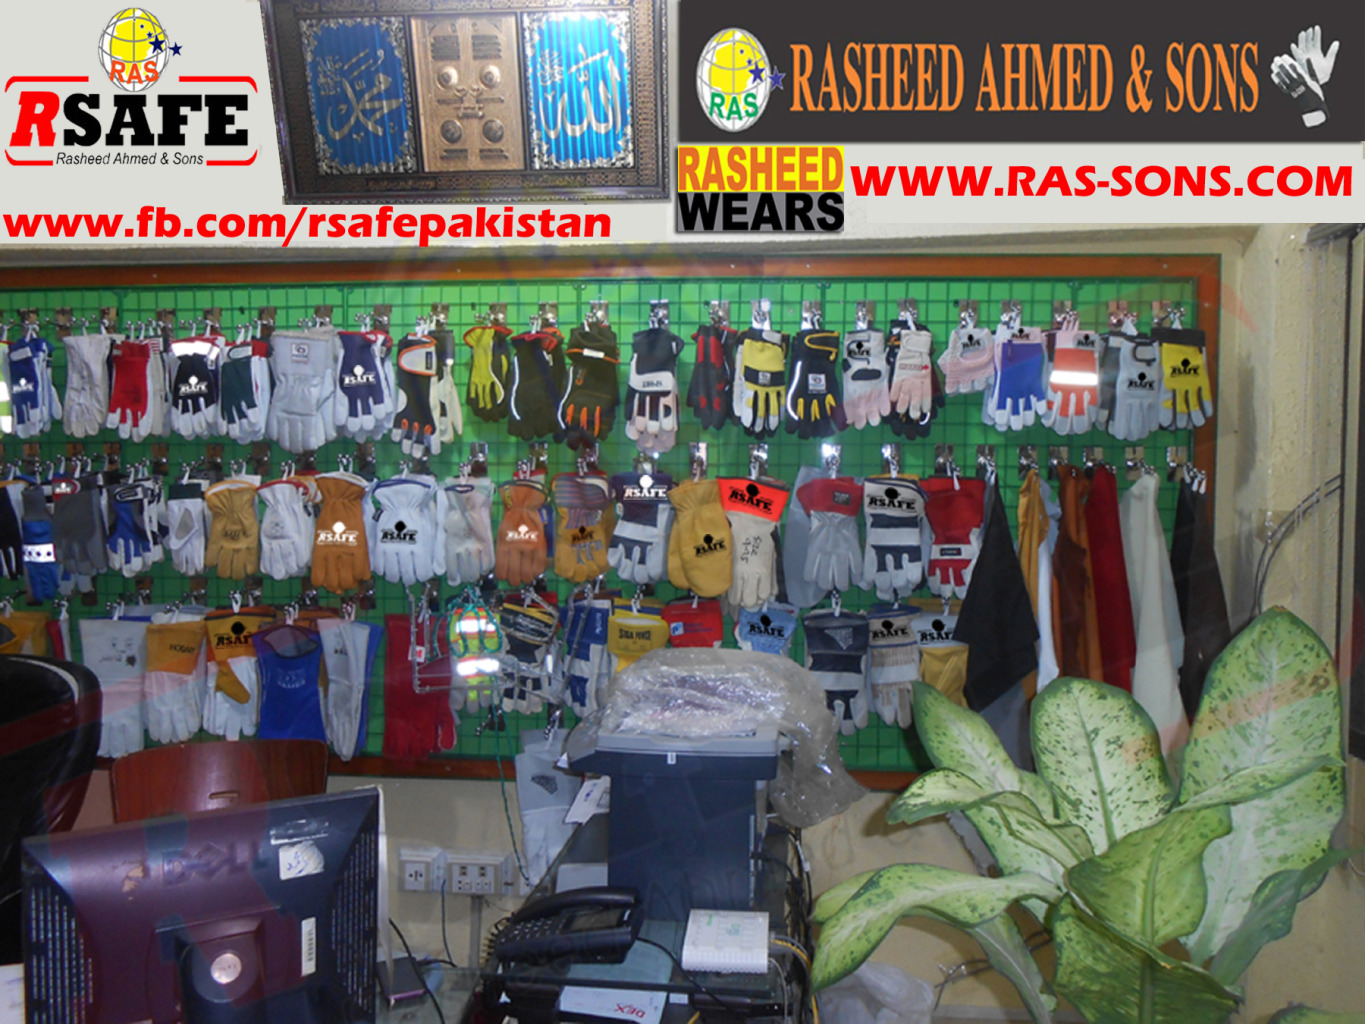 Rasheed Ahmed & Sons (Karachi)